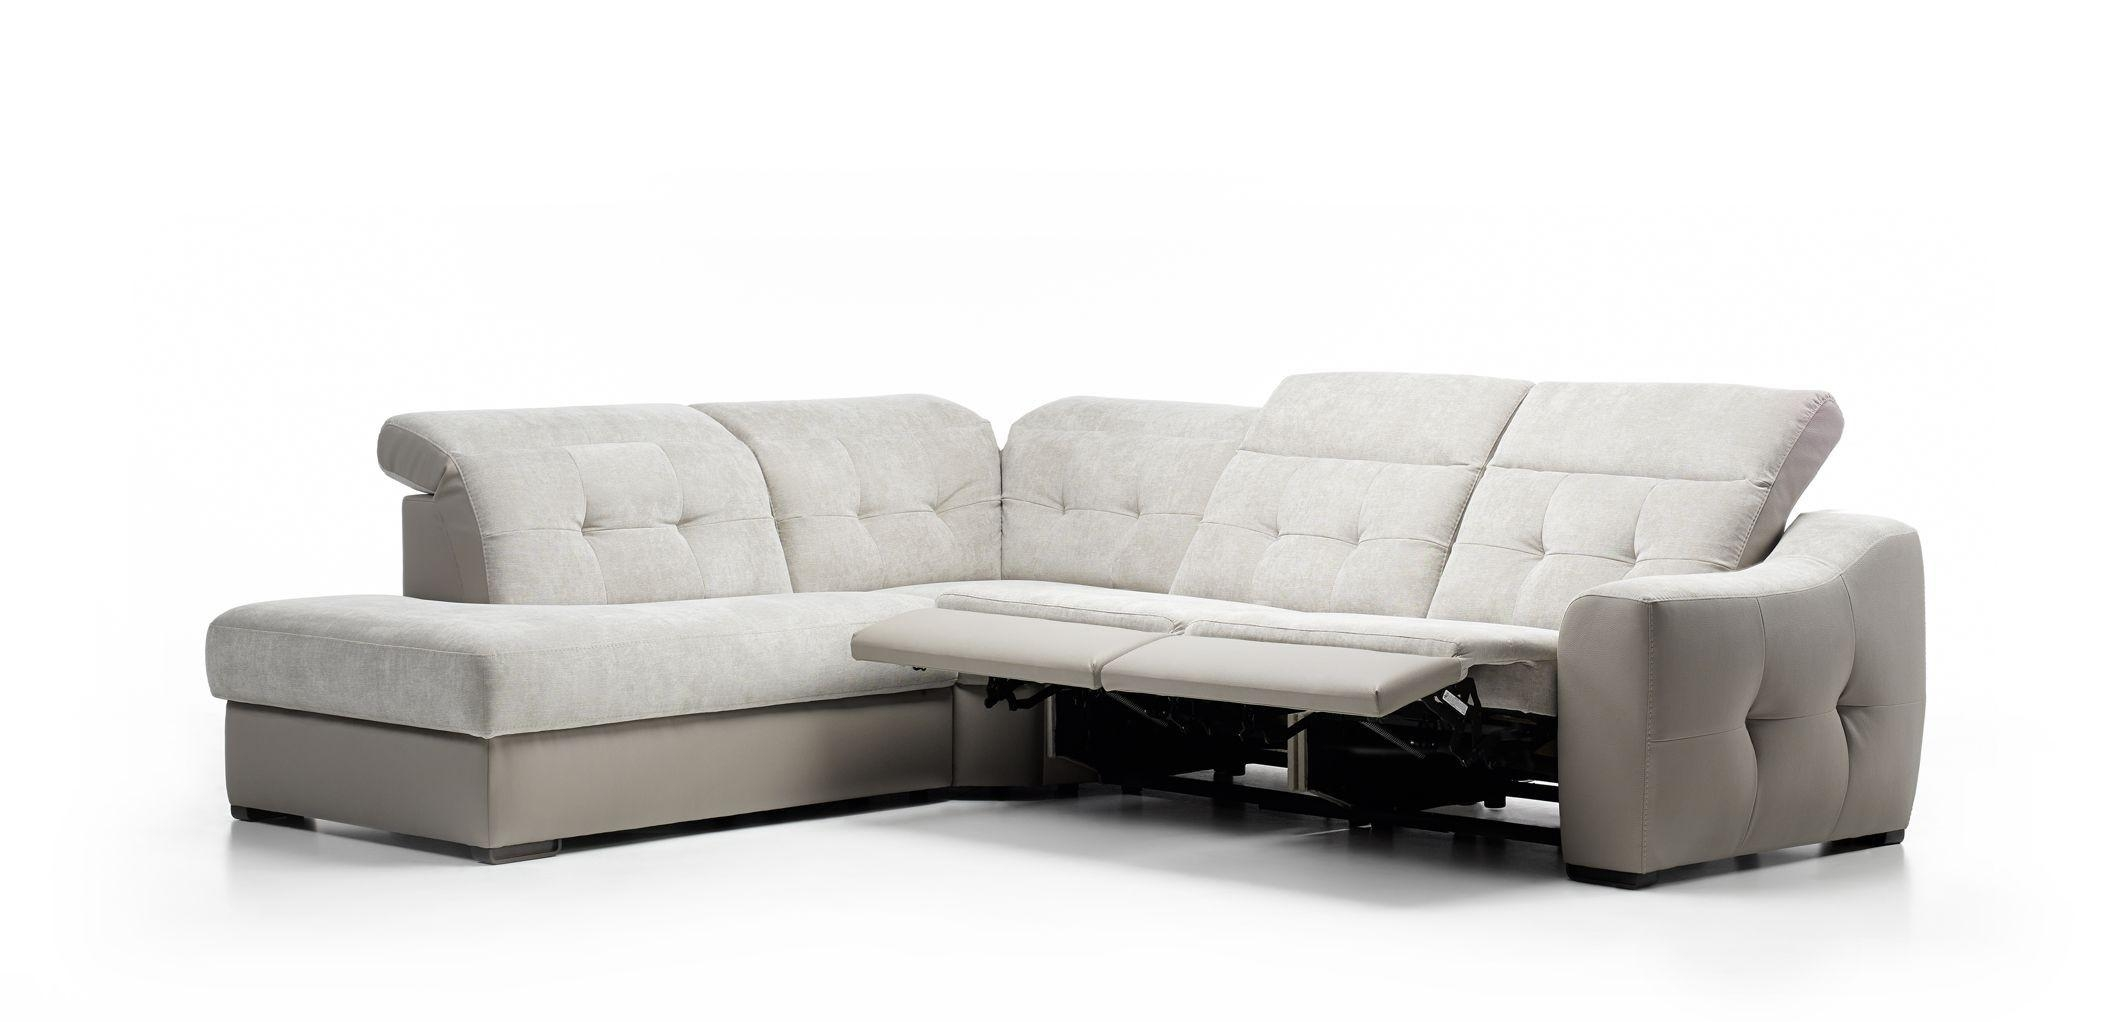 Furniture: Fantastic Sectional Couches With Recliners For Your Regarding Deep Seat Leather Sectional (Image 8 of 15)